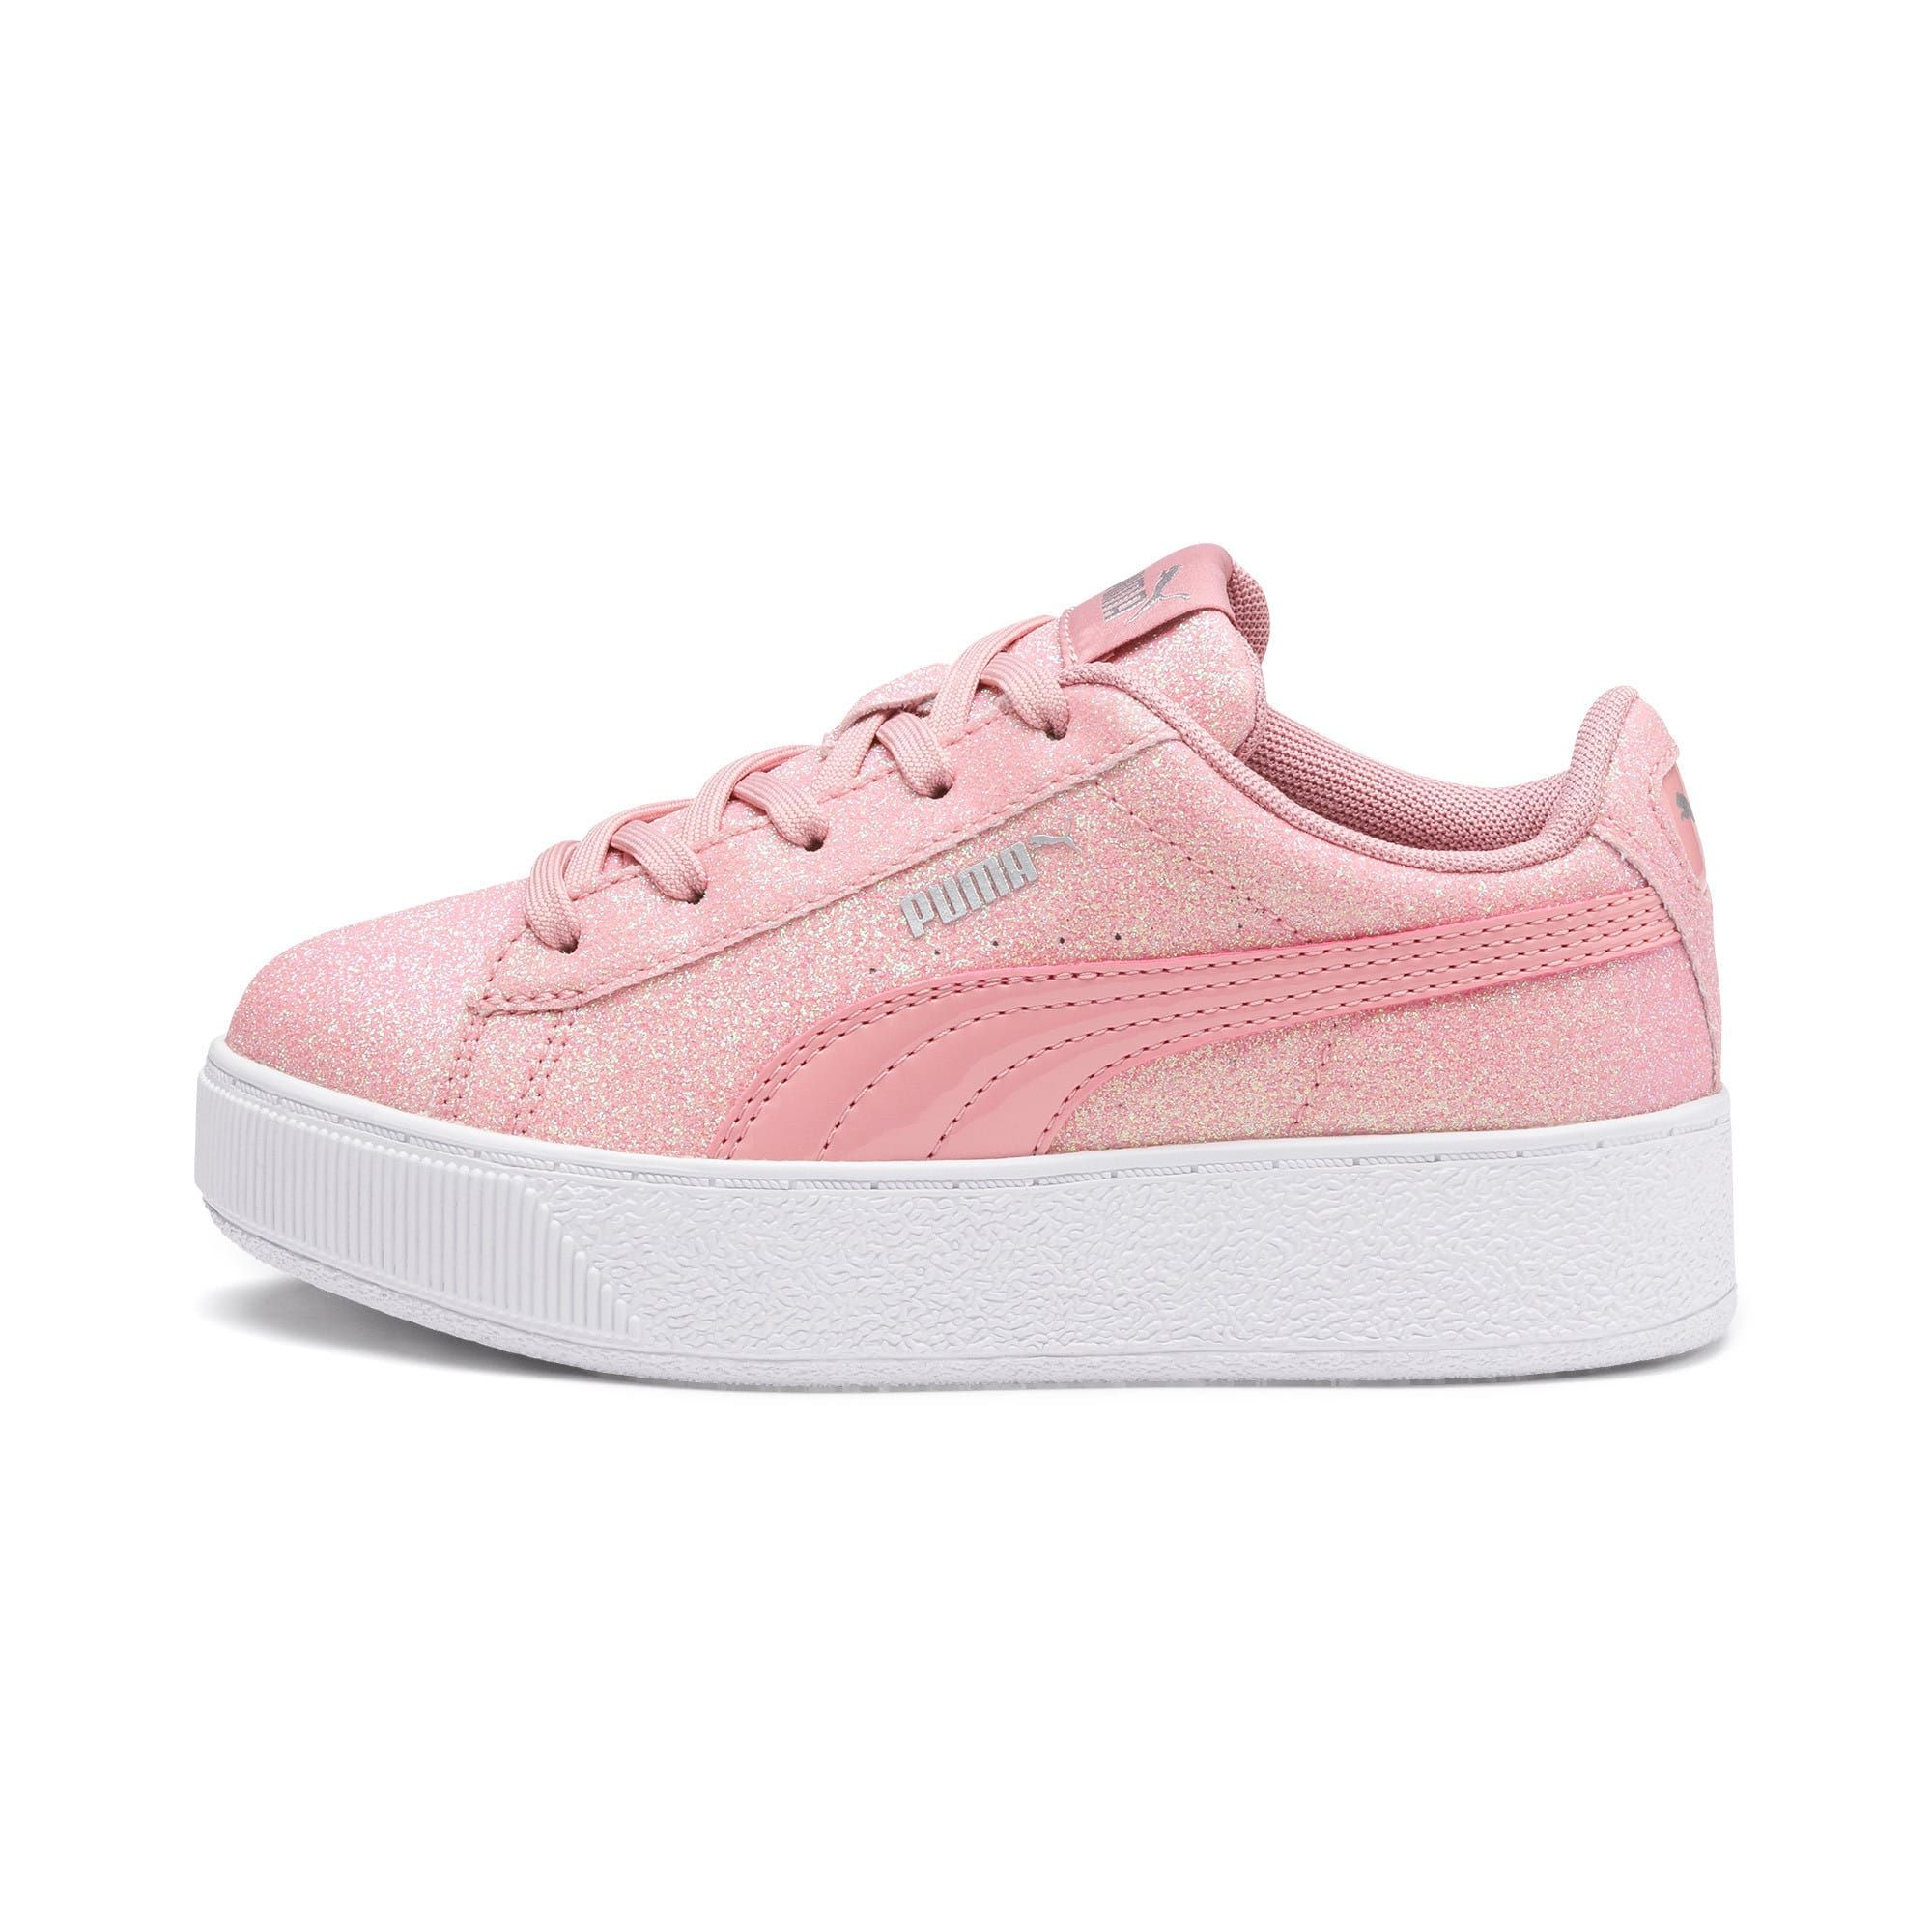 PUMA Vikky Platform Glitz Girls' Trainers in Bridal Rose